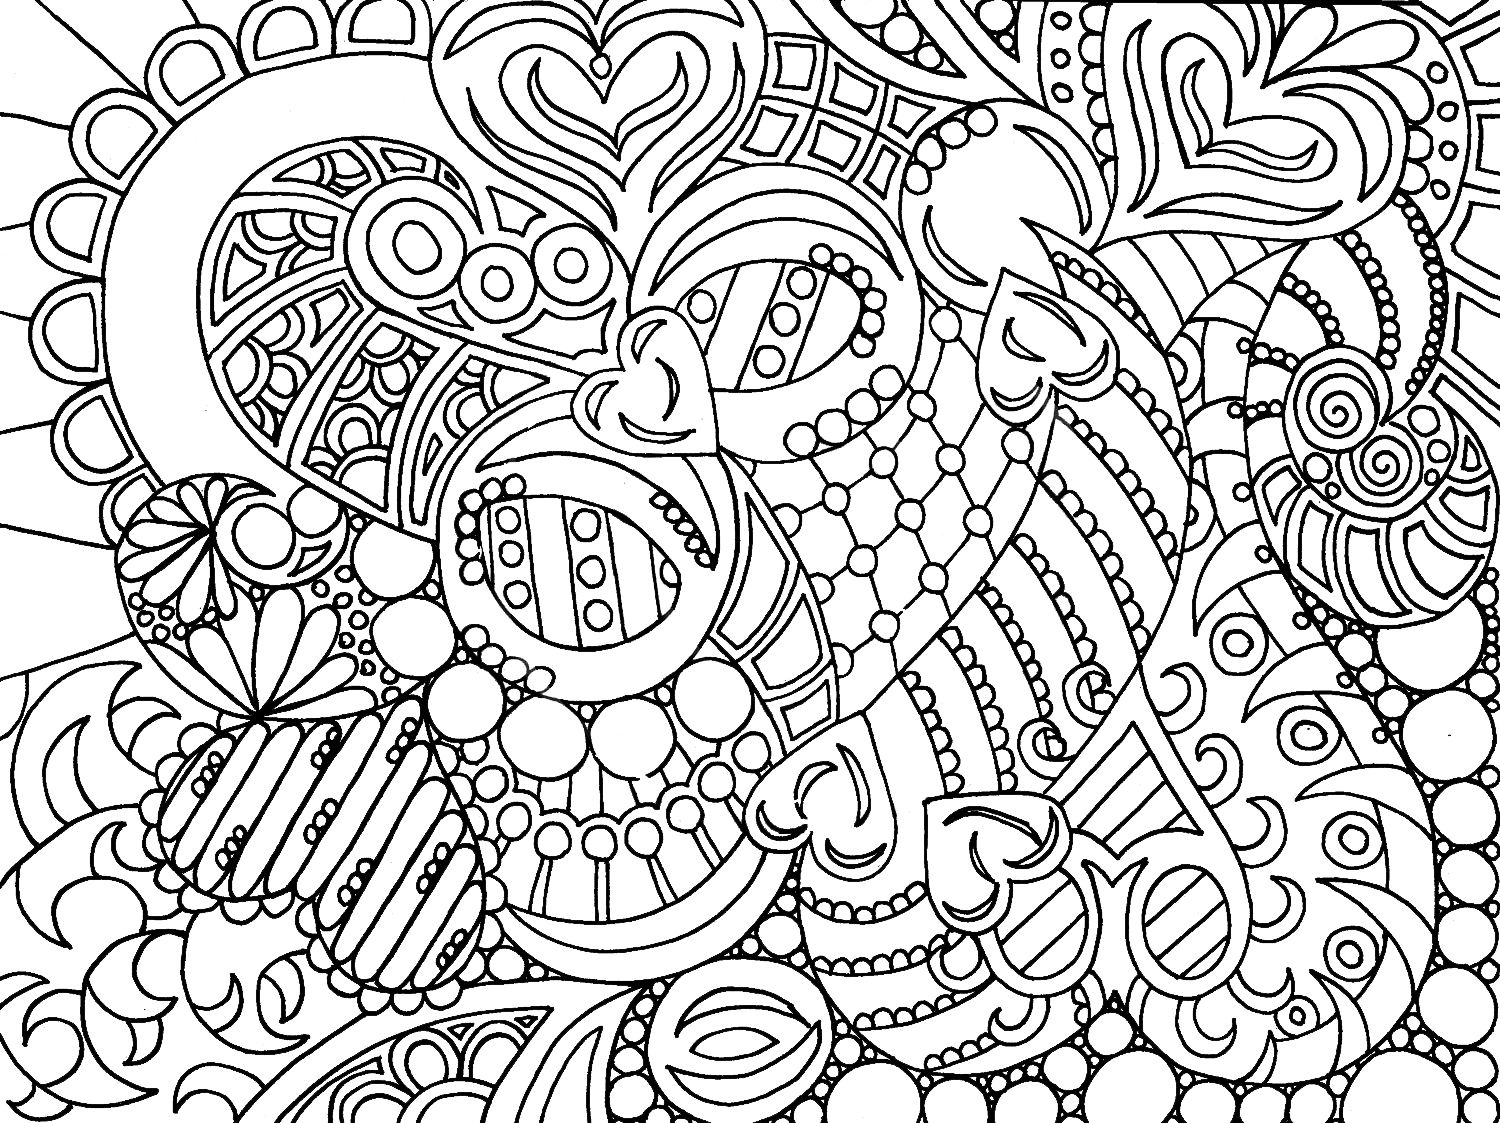 Printable drawing pages for adults - Explore Printable Adult Coloring Pages And More